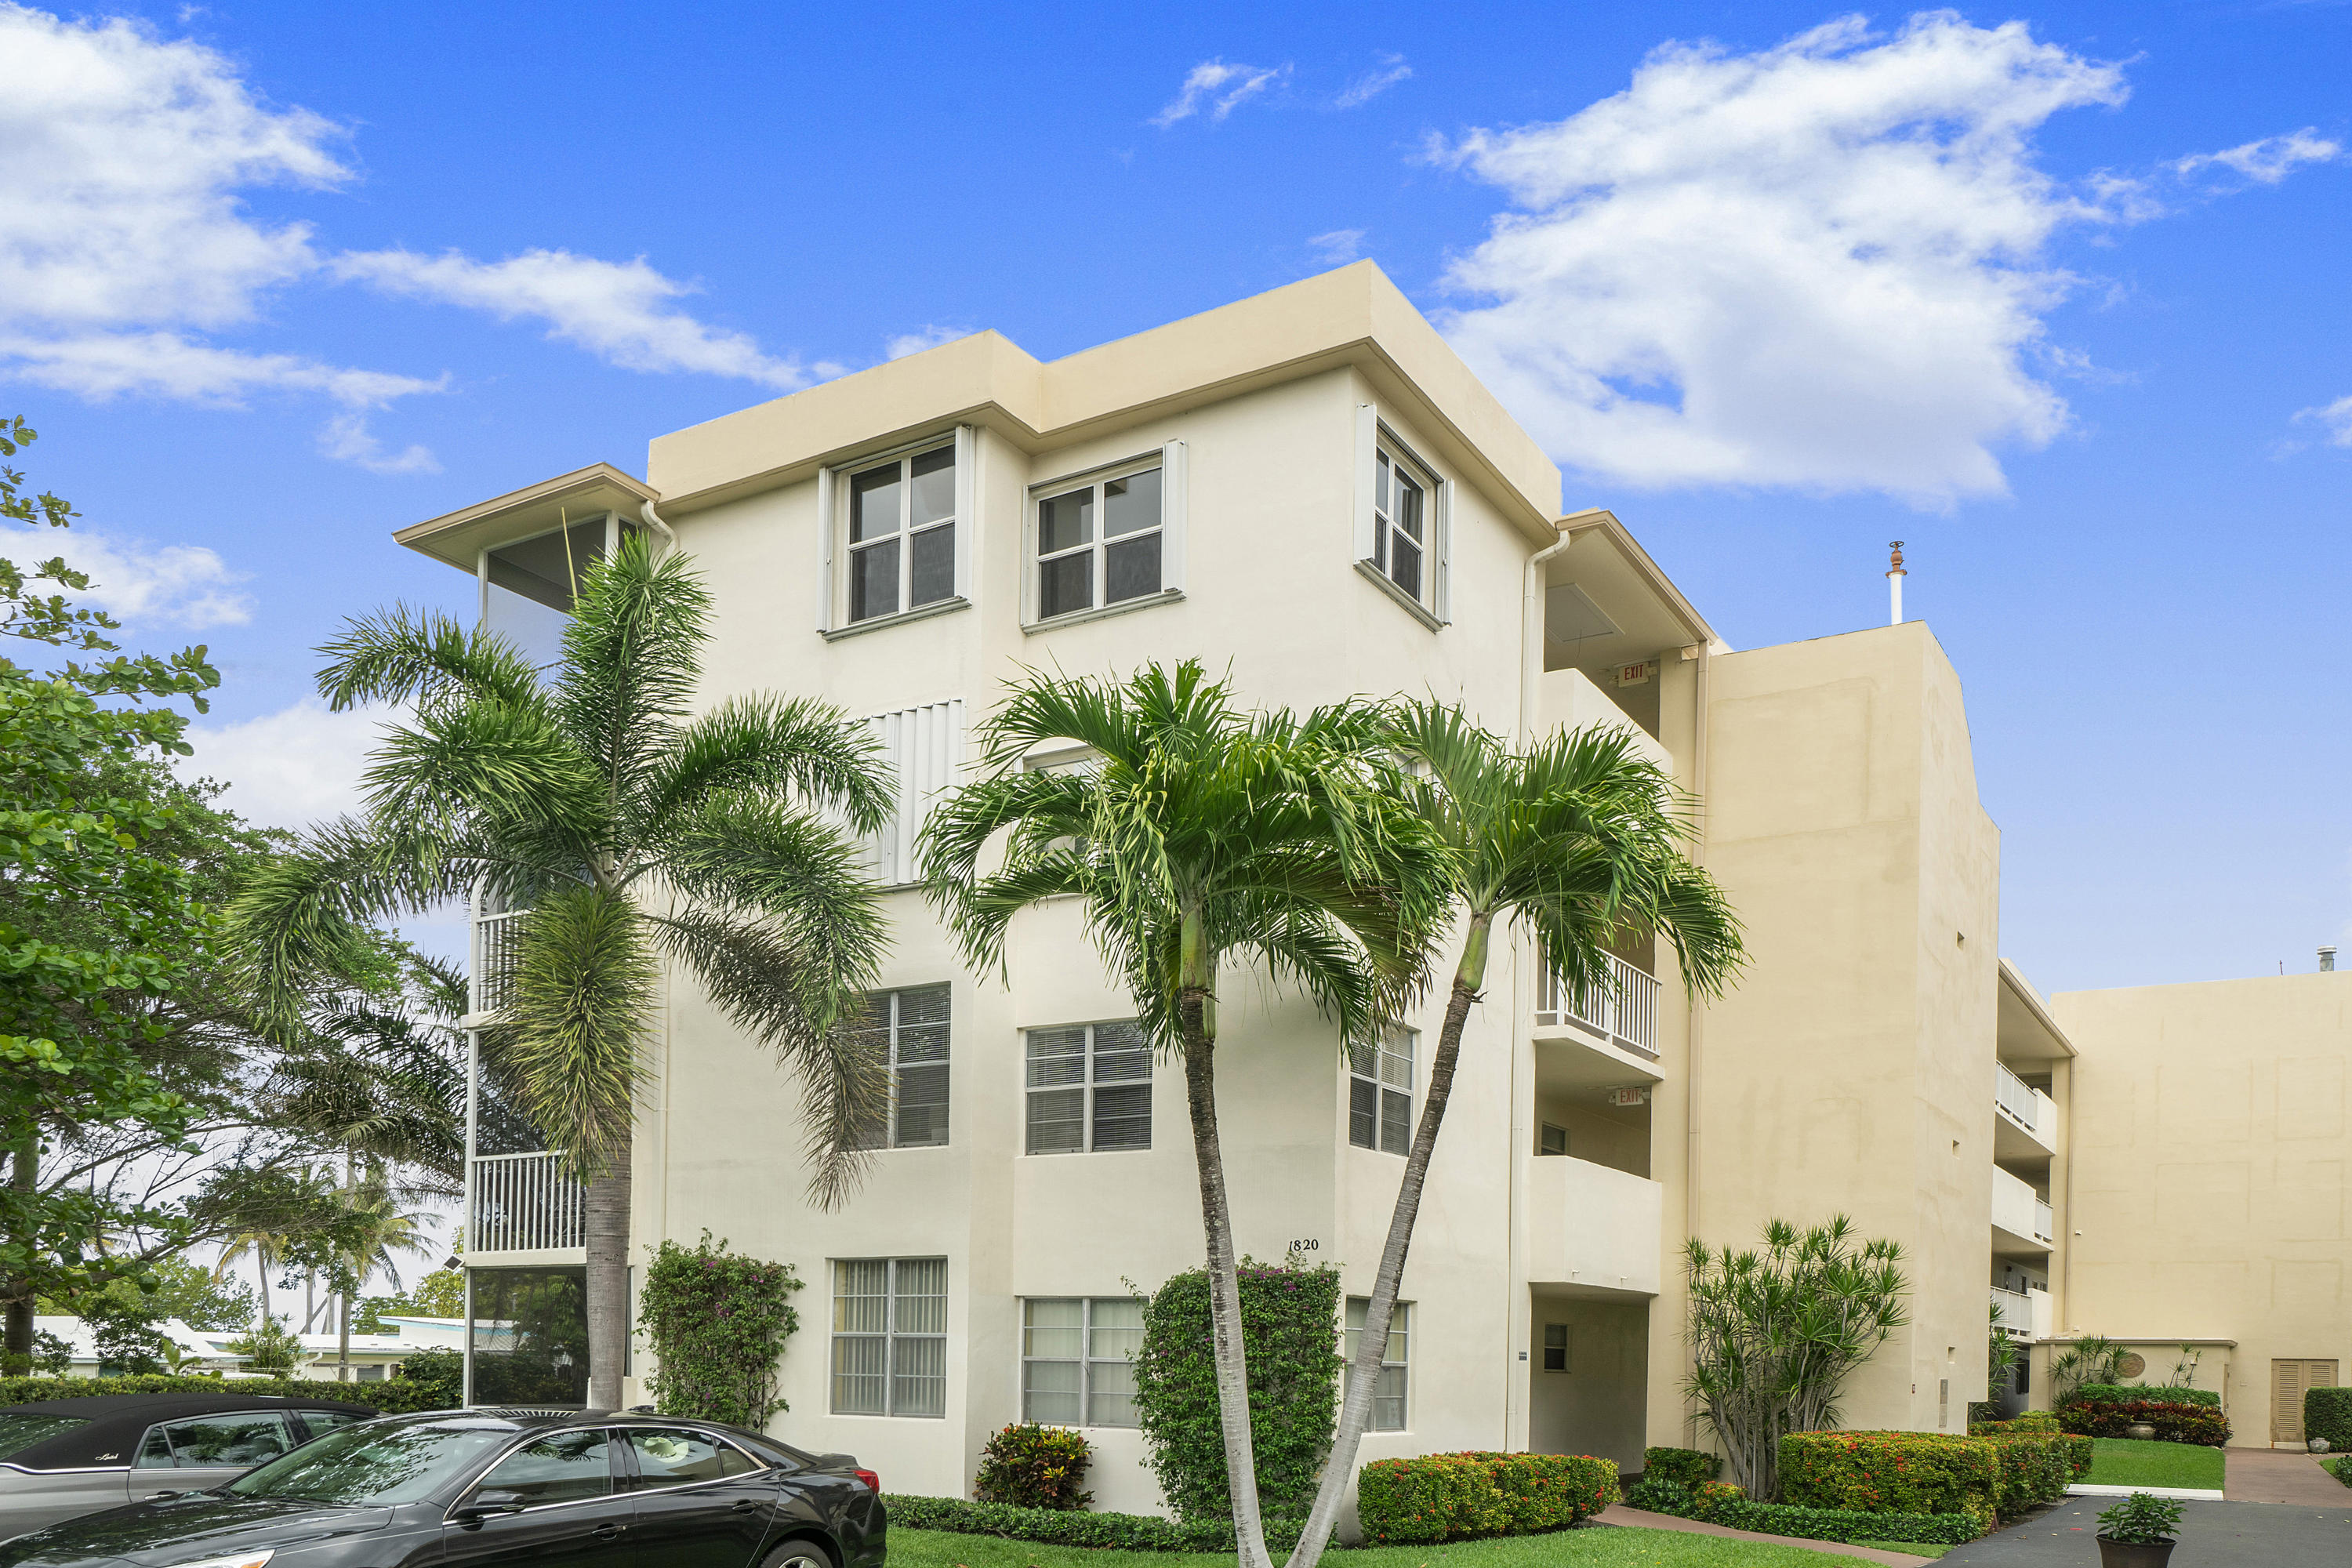 1820  New Palm Way 207 For Sale 10720283, FL